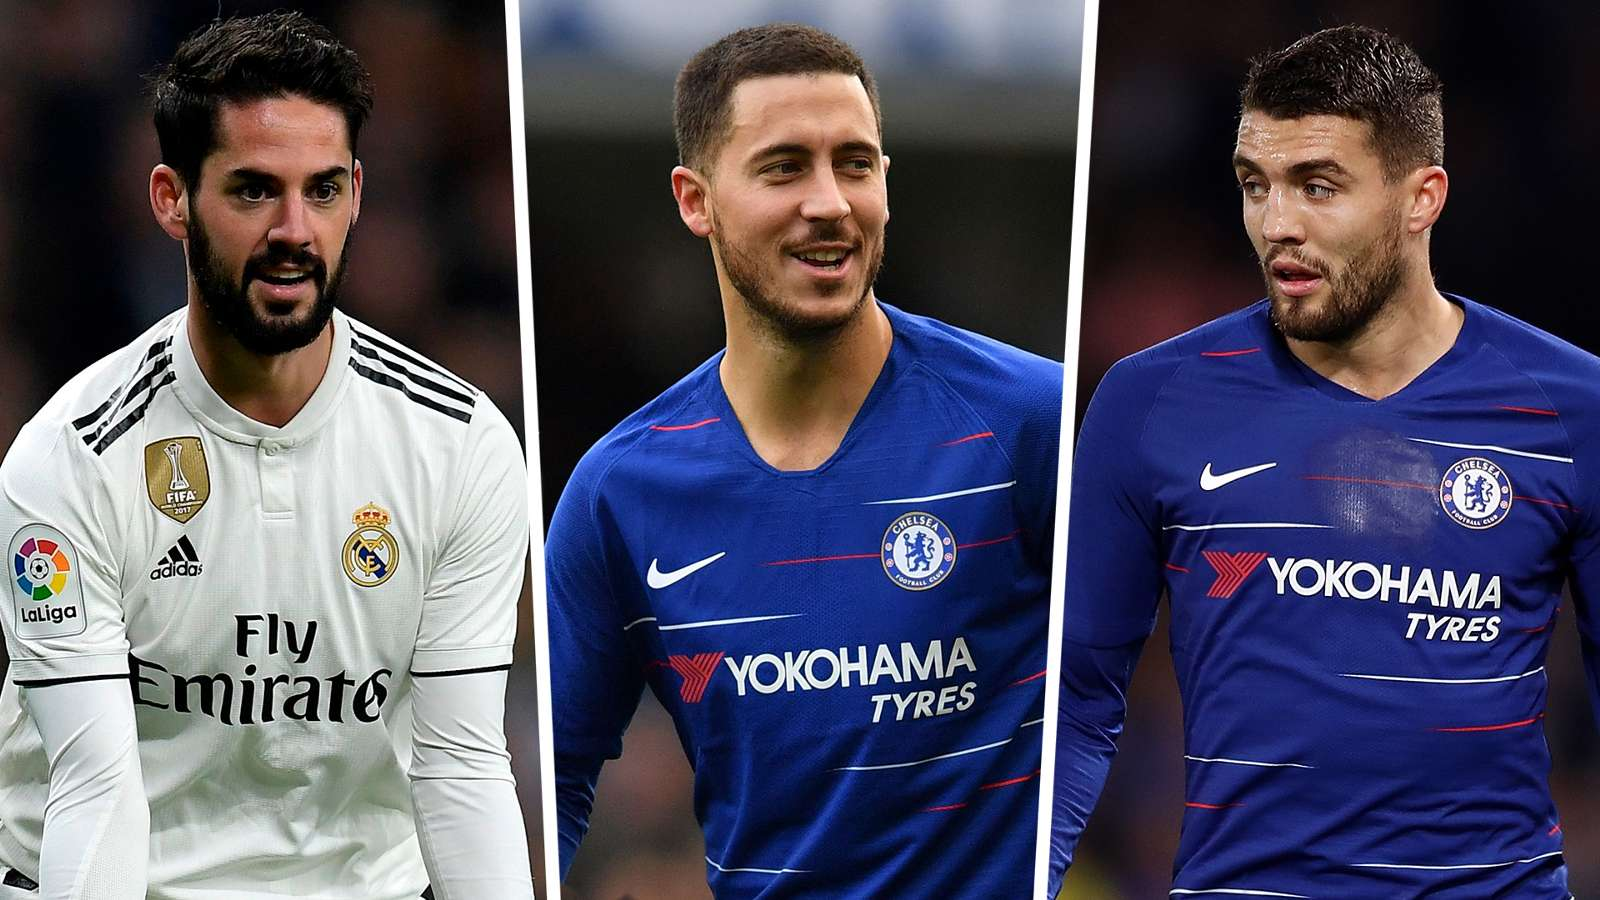 isco eden hazard mateo kovacic - Real Madrid Offer Chelsea Isco and Mateo Kovacic for Eden Hazard